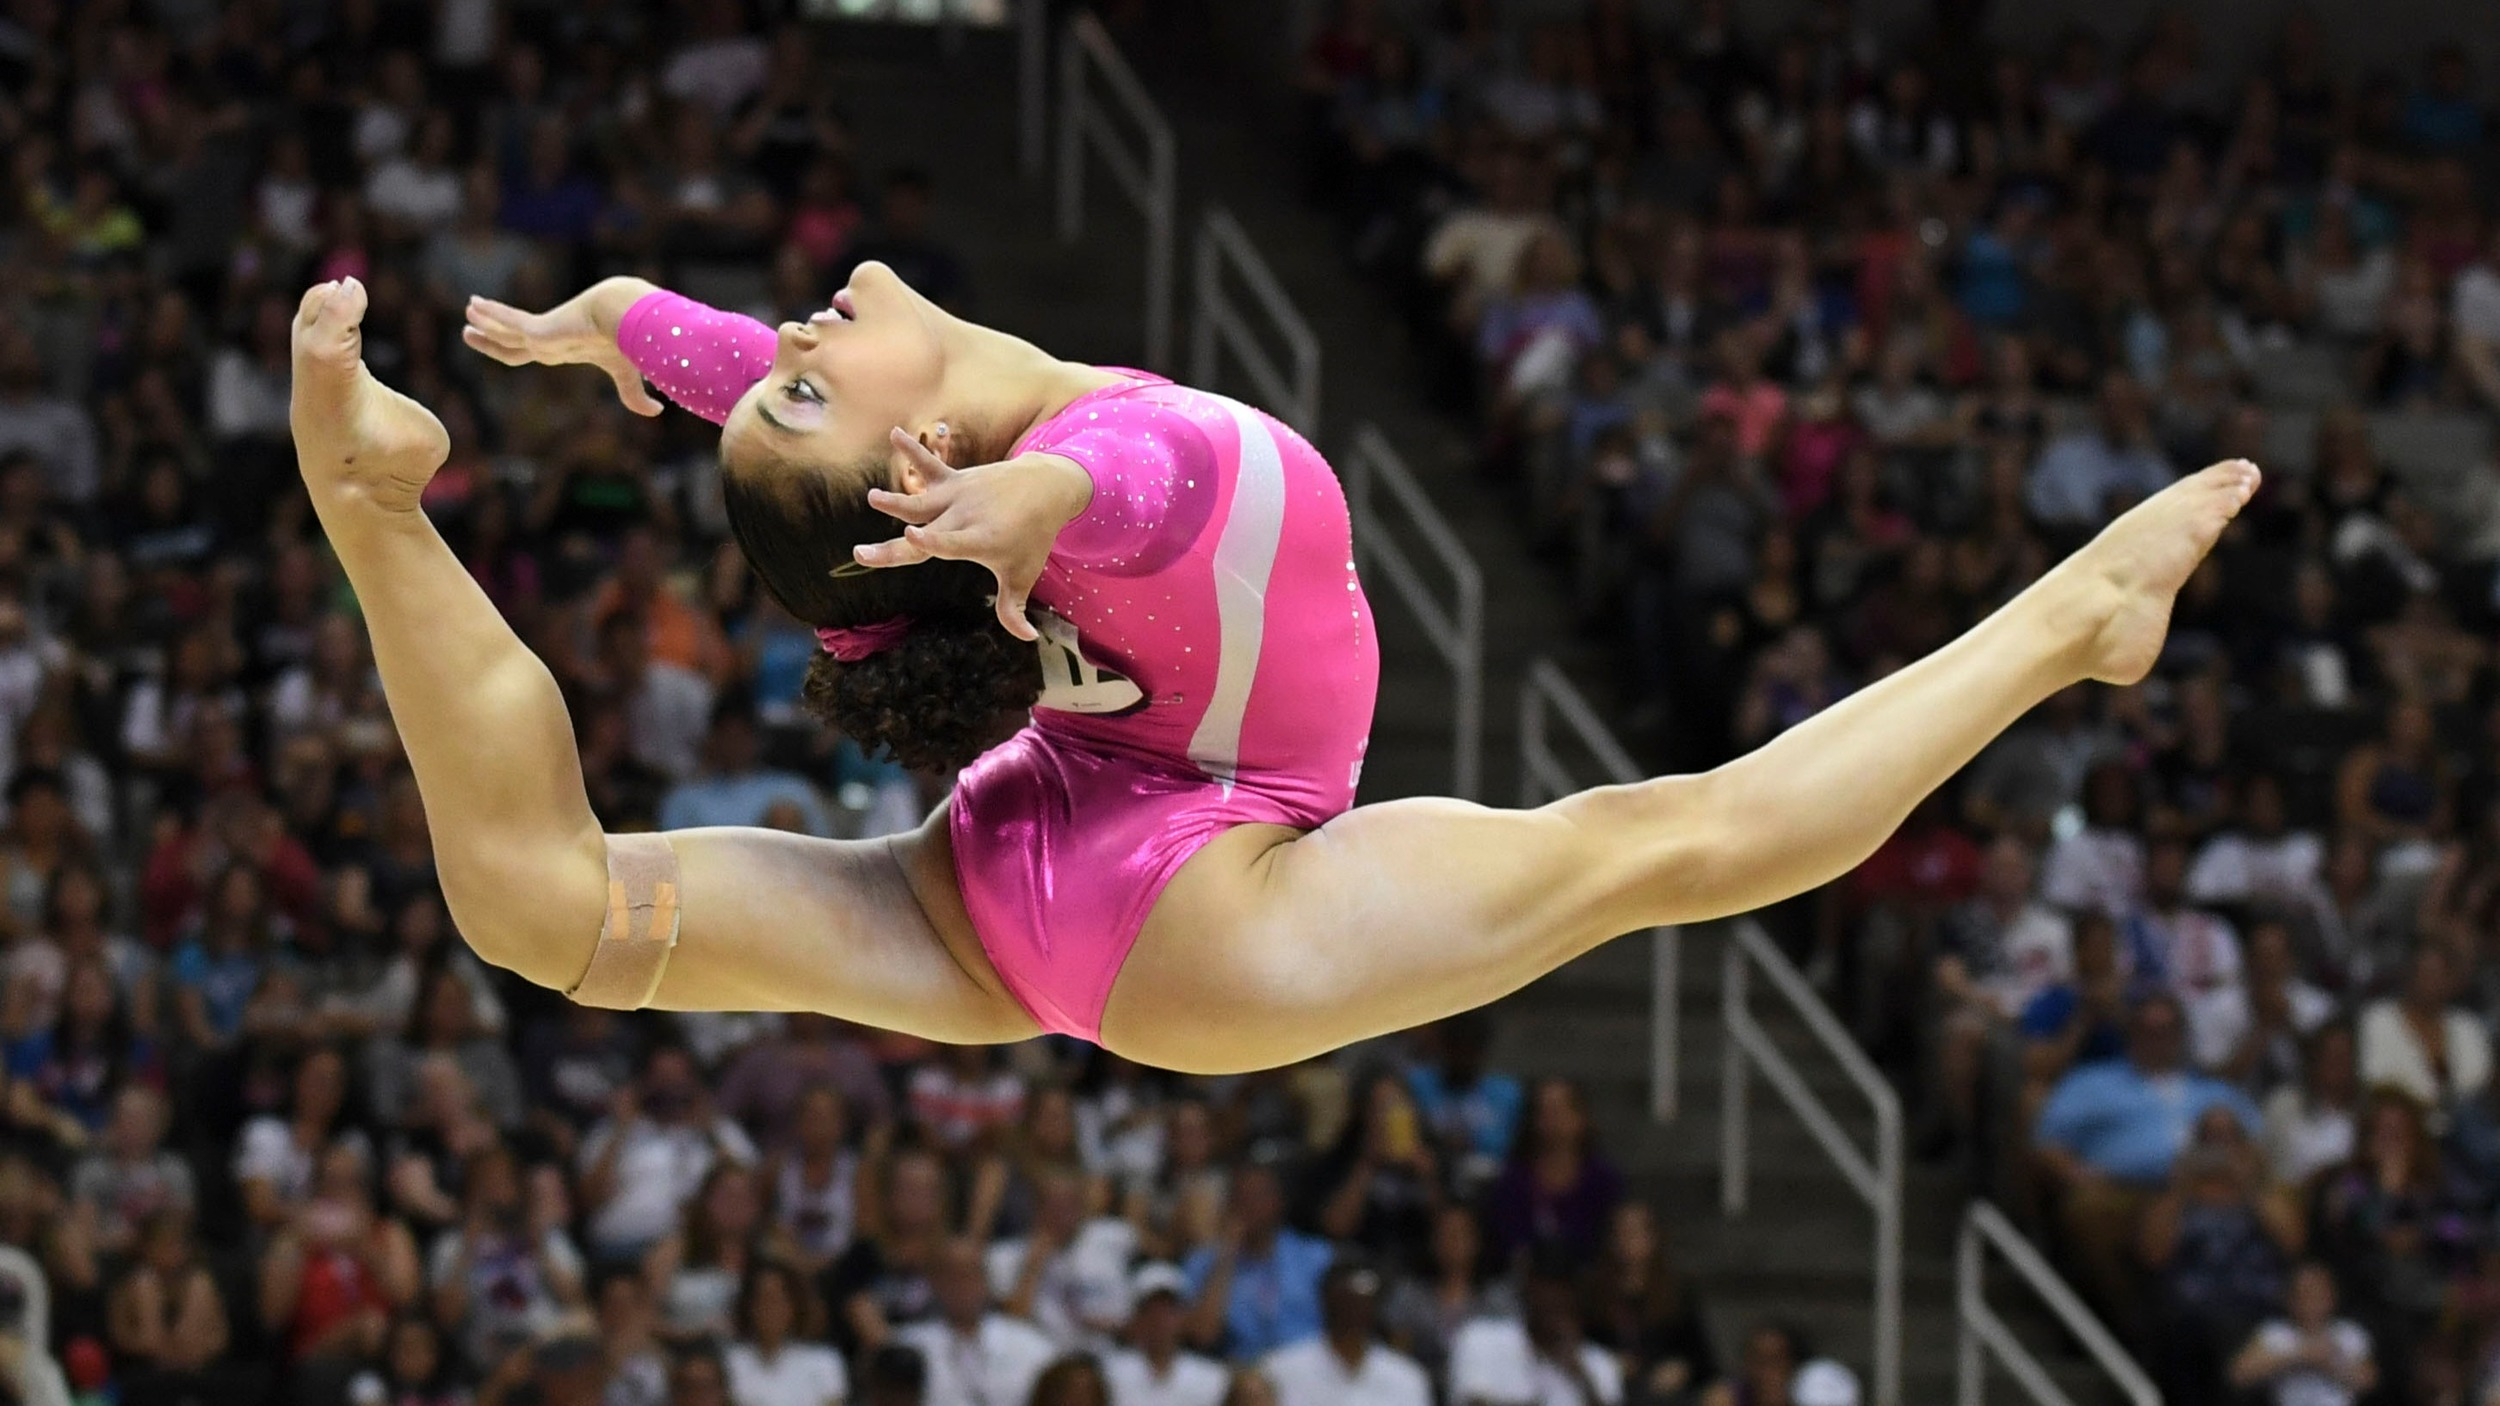 """Underneath the carpet is a 2"""" layer of foam followed by 5//8"""" plywood with 2""""x4"""" springs underneath. The springs were added to give the gymnast height and momentum but to help reduce injury during difficult landings."""